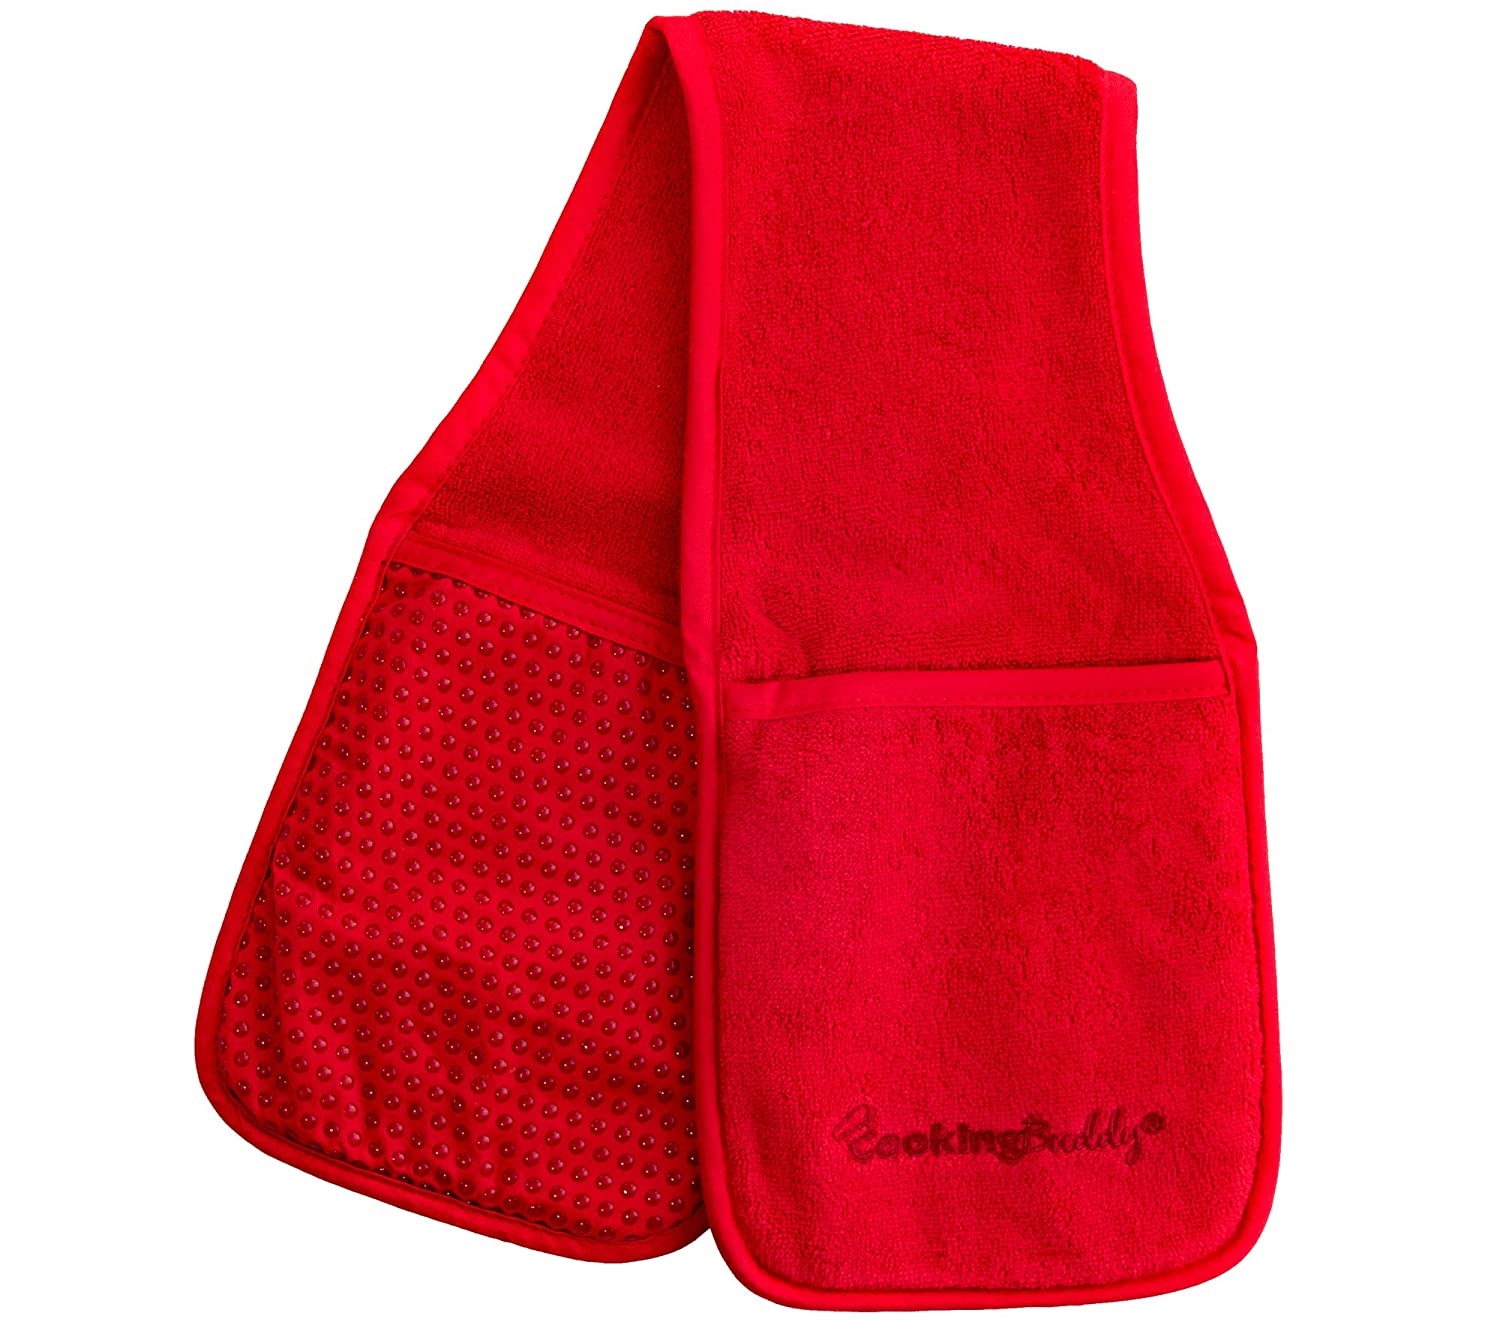 Campanelli's Cooking Buddy - Professional Grade All-in-One Pot Holder, Hand Towel, Lid Grip, Tool Caddy, and Trivet. Heat Resistant up to 500ºF. As Seen On Facebook (Scarlet Red)